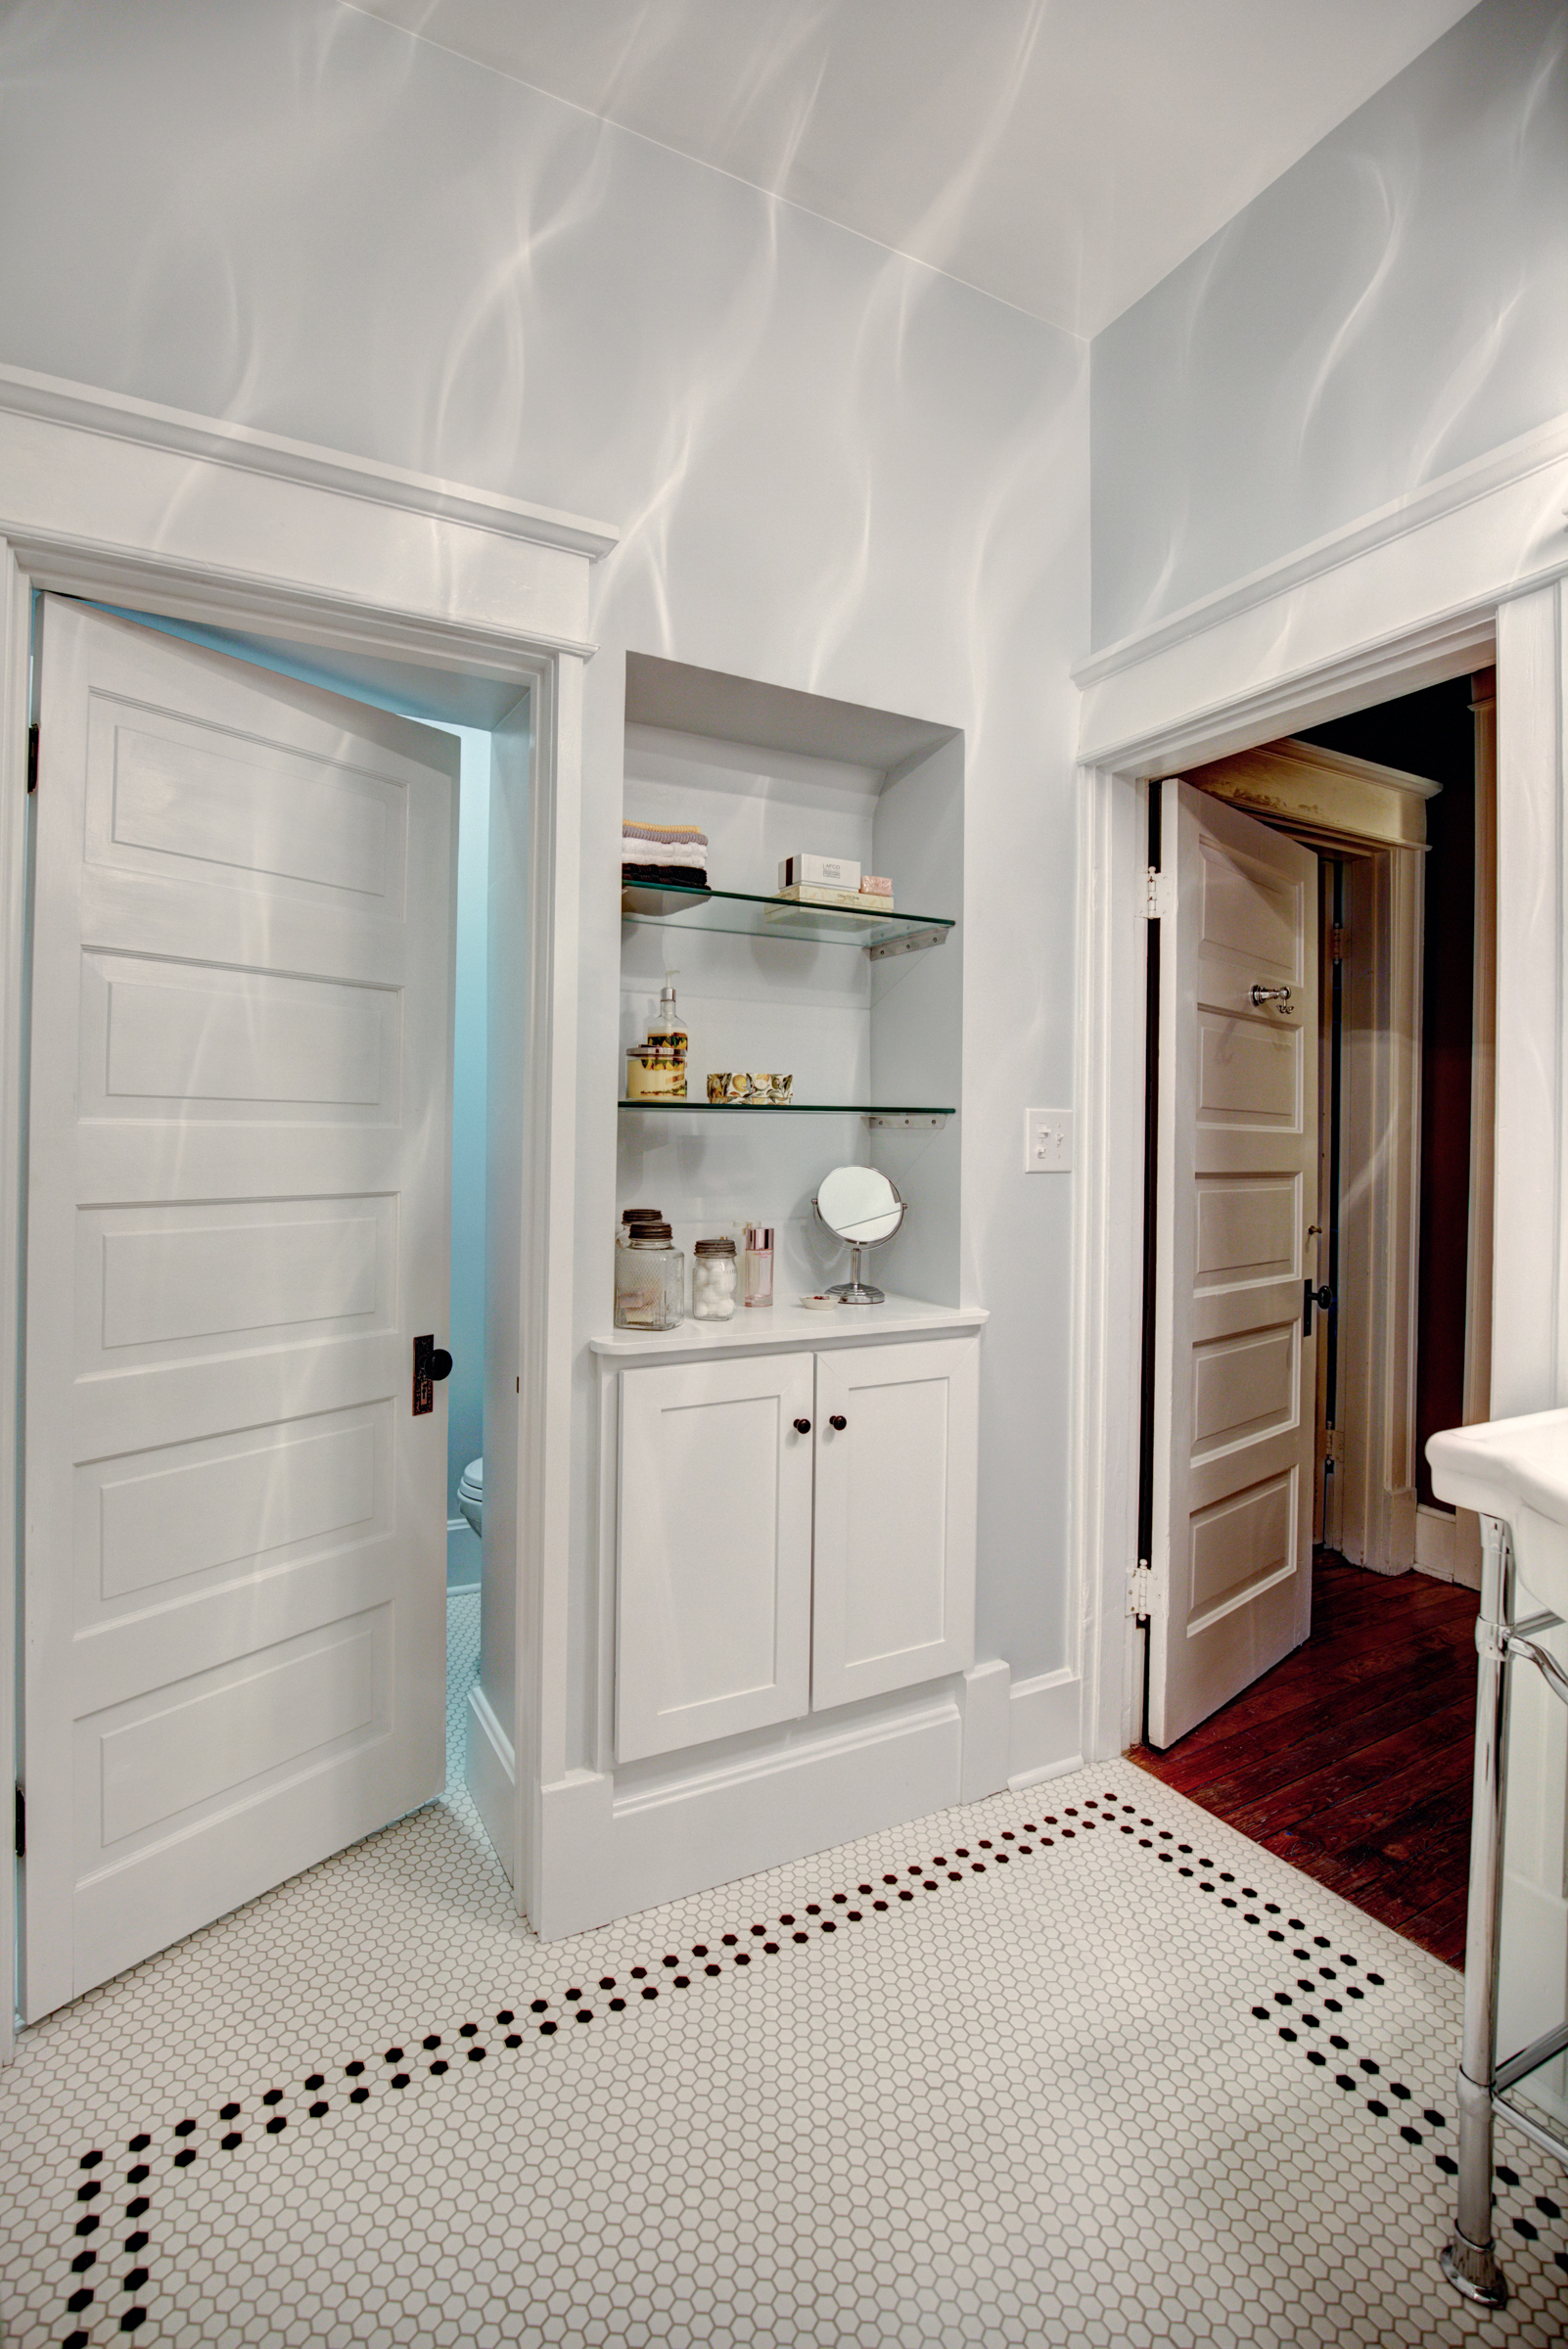 Before & After Bathroom Remodeling in Lexington, Kentucky